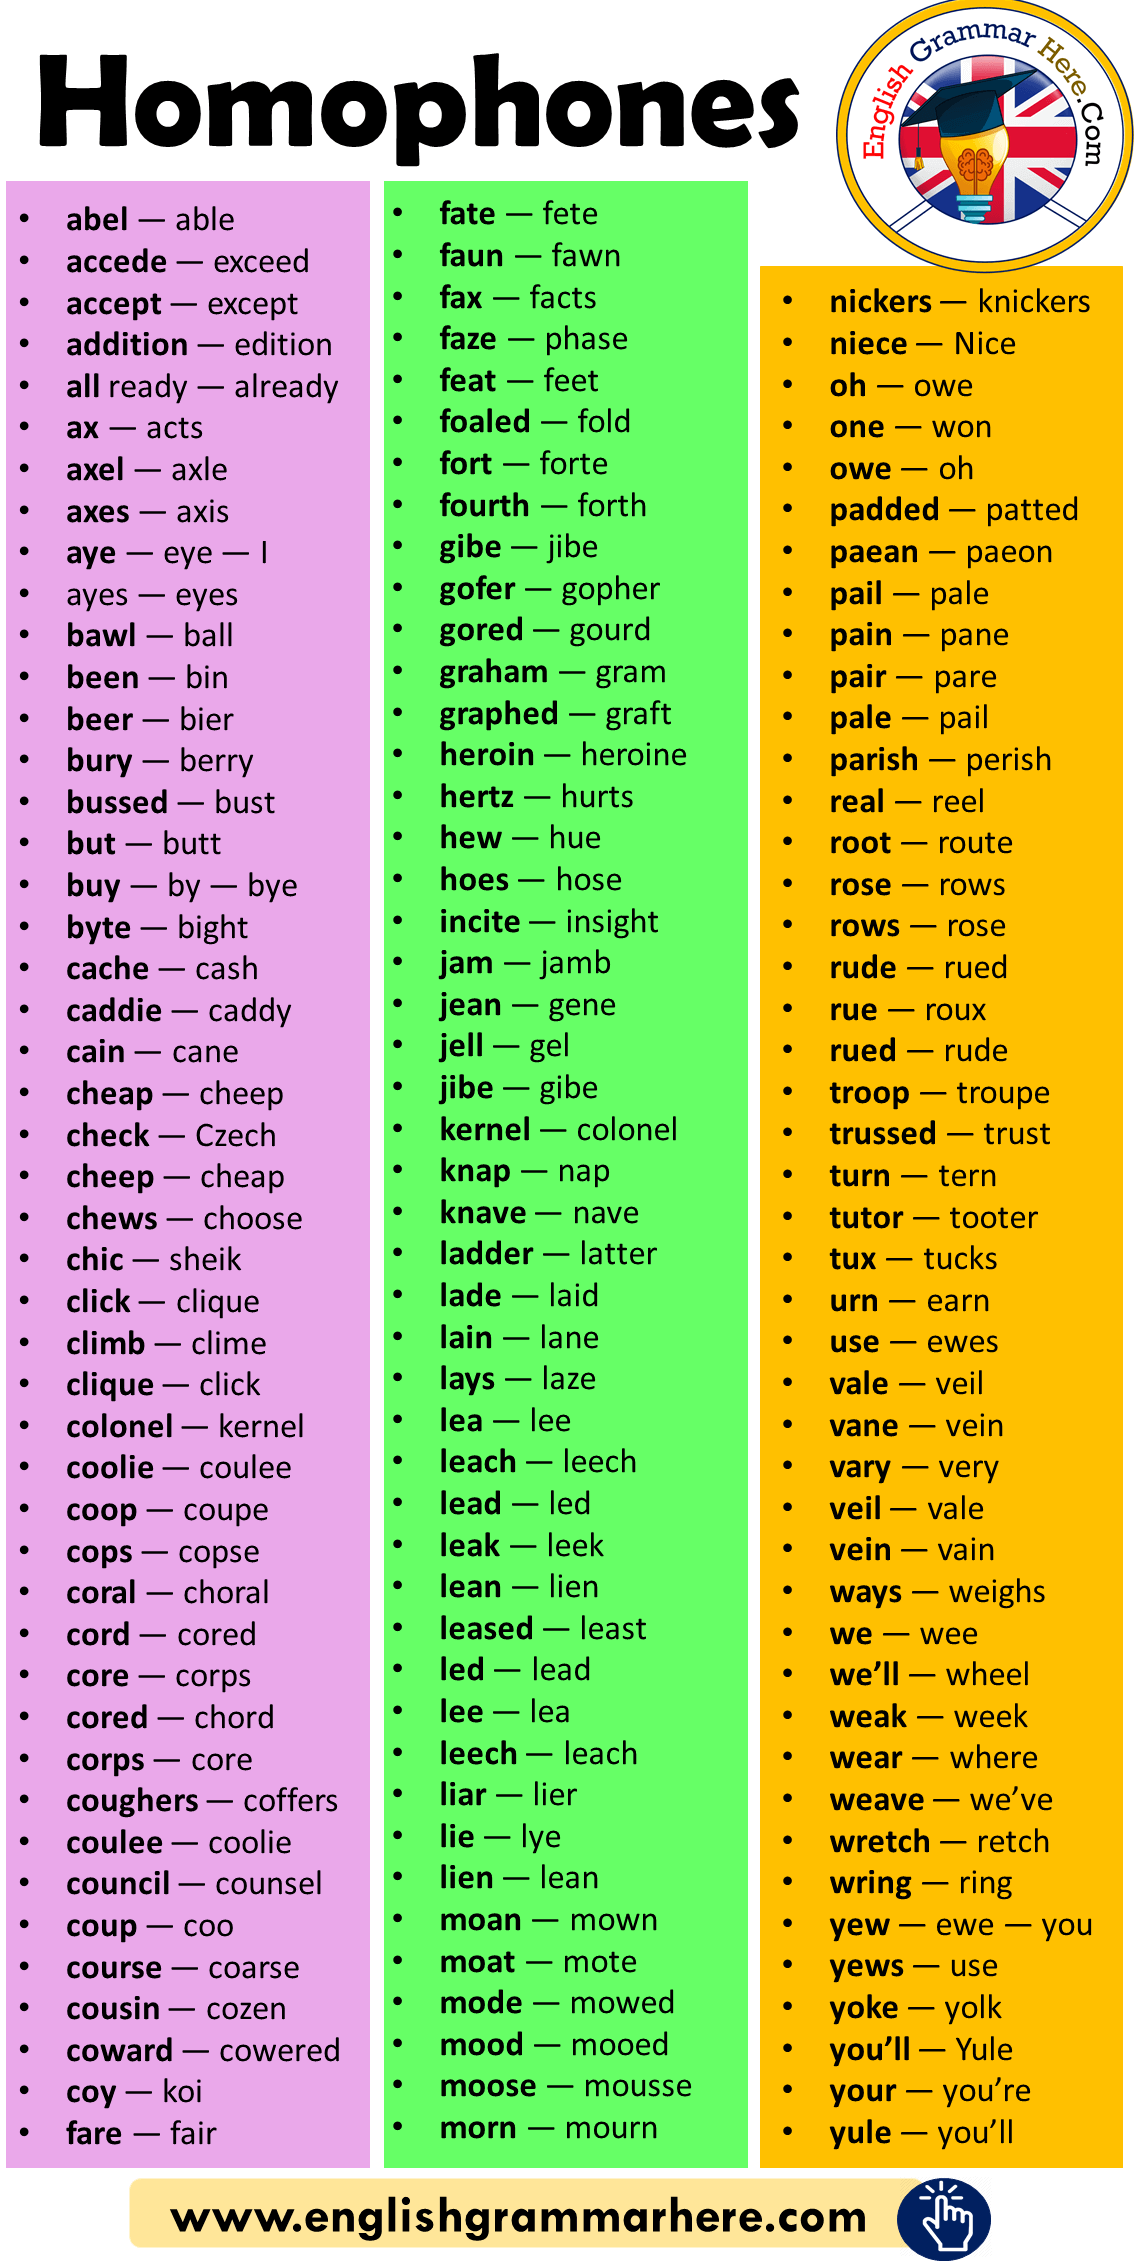 English Homophones / Homony List in English